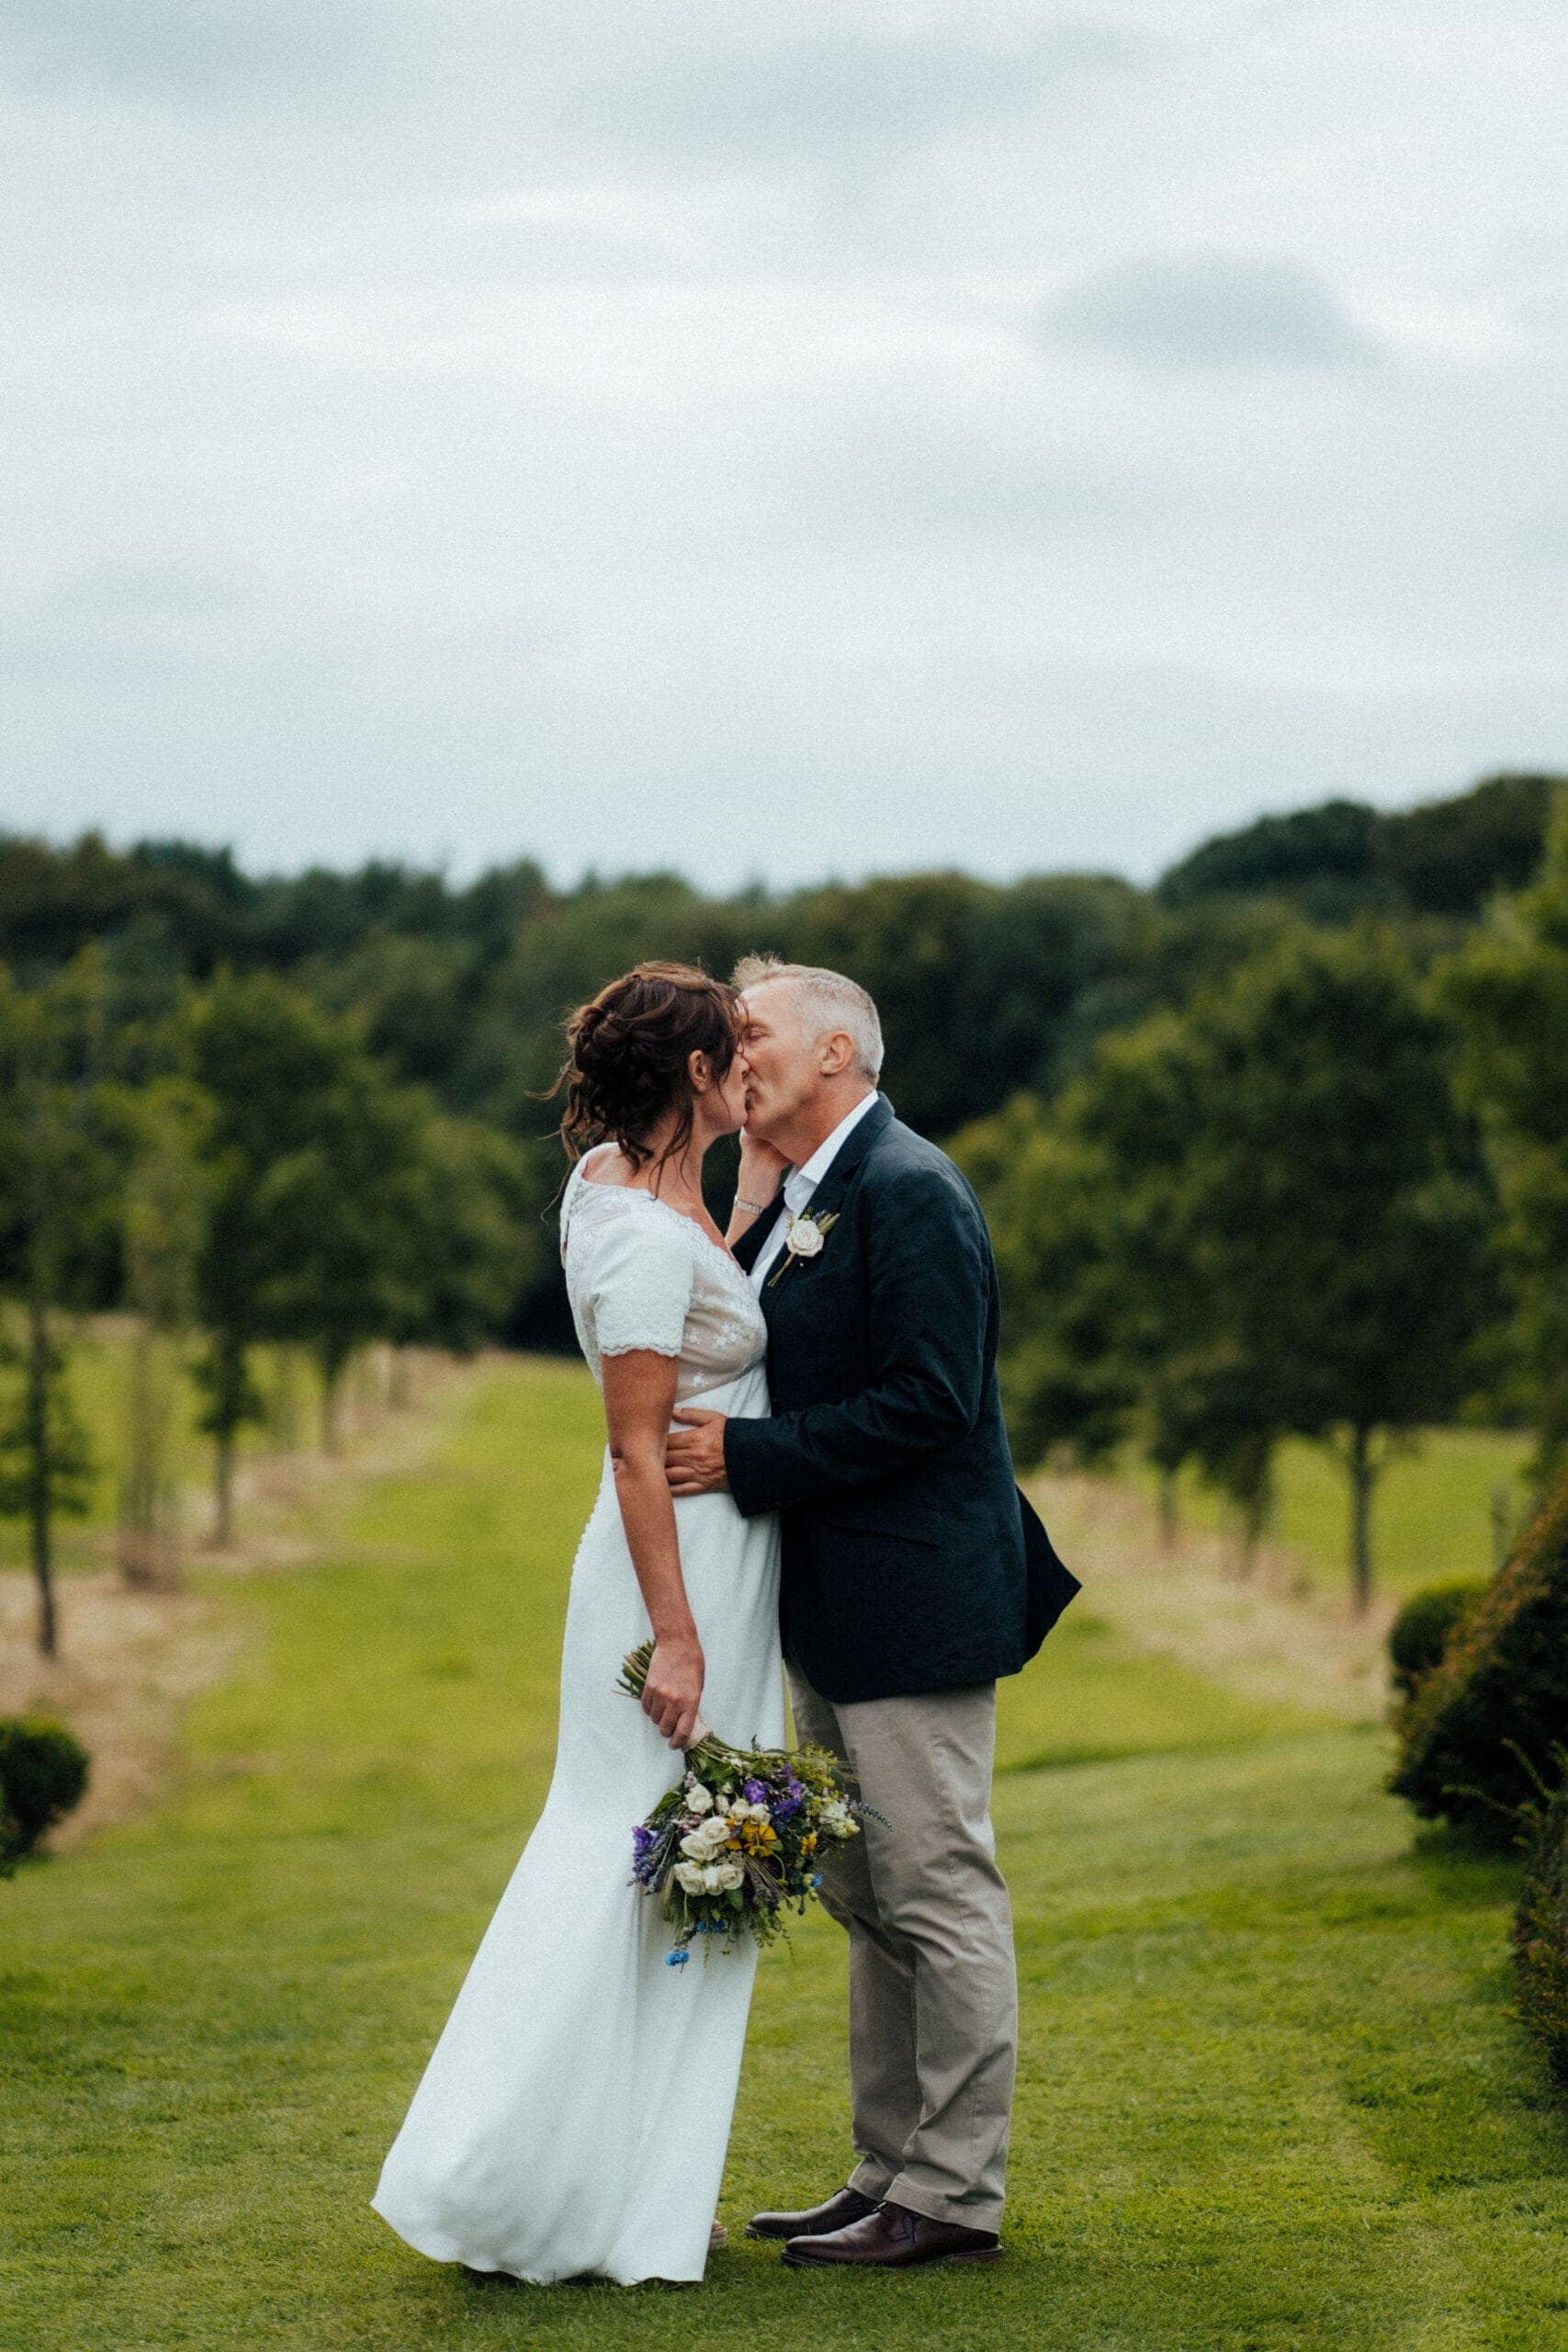 bride and groom at Chaucer Barn wedding